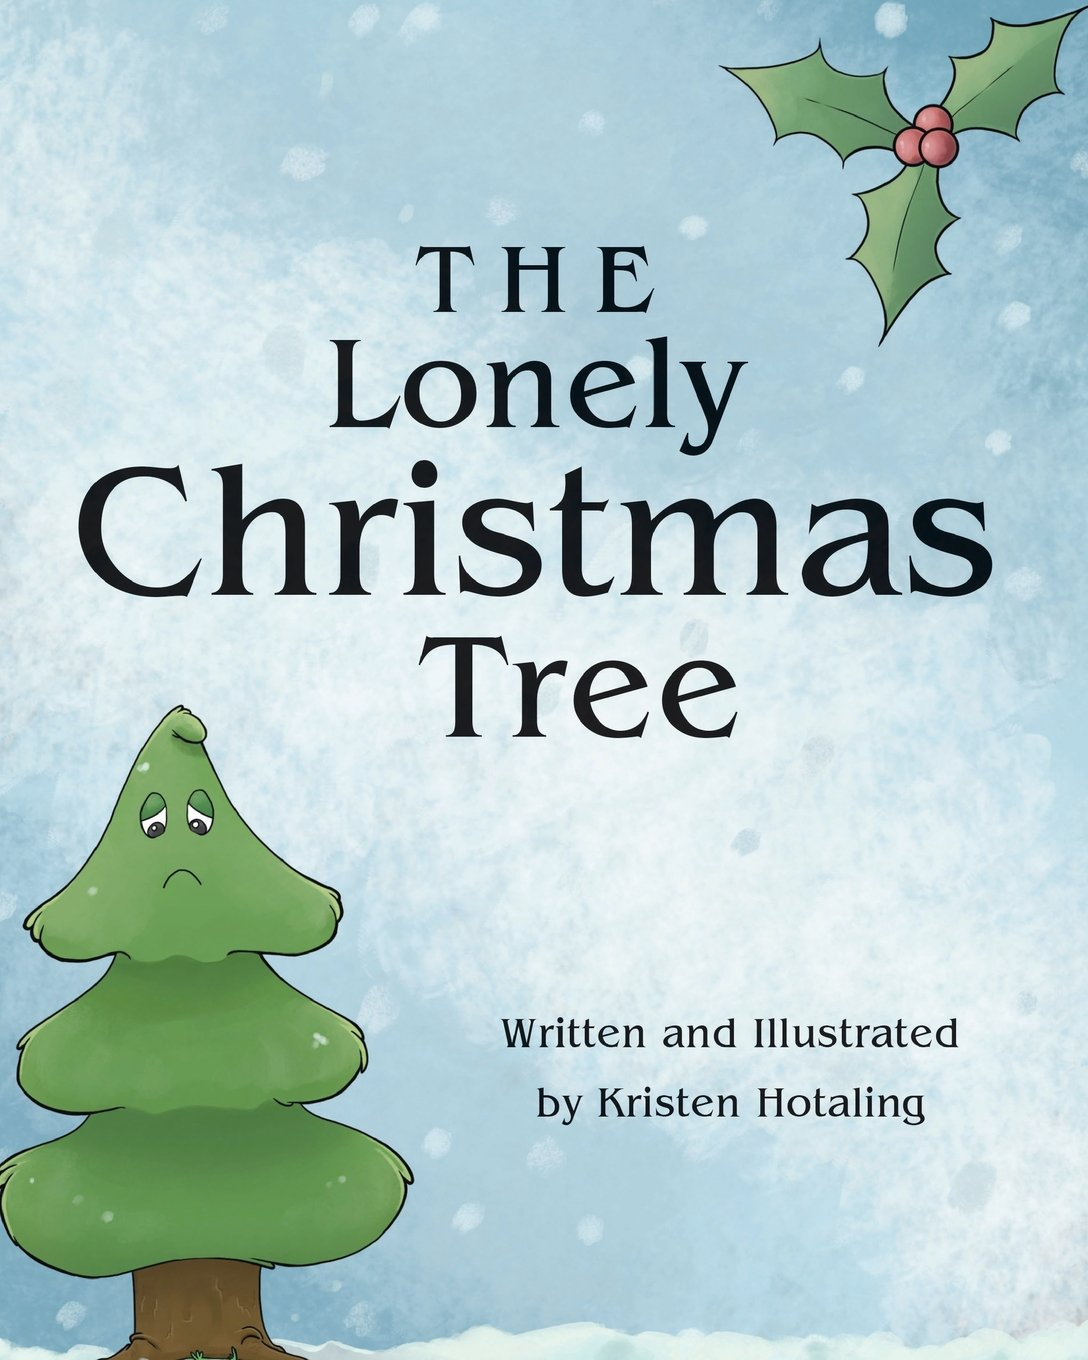 Lonely On Christmas.The Lonely Christmas Tree Kristen Hotaling 9781682135280